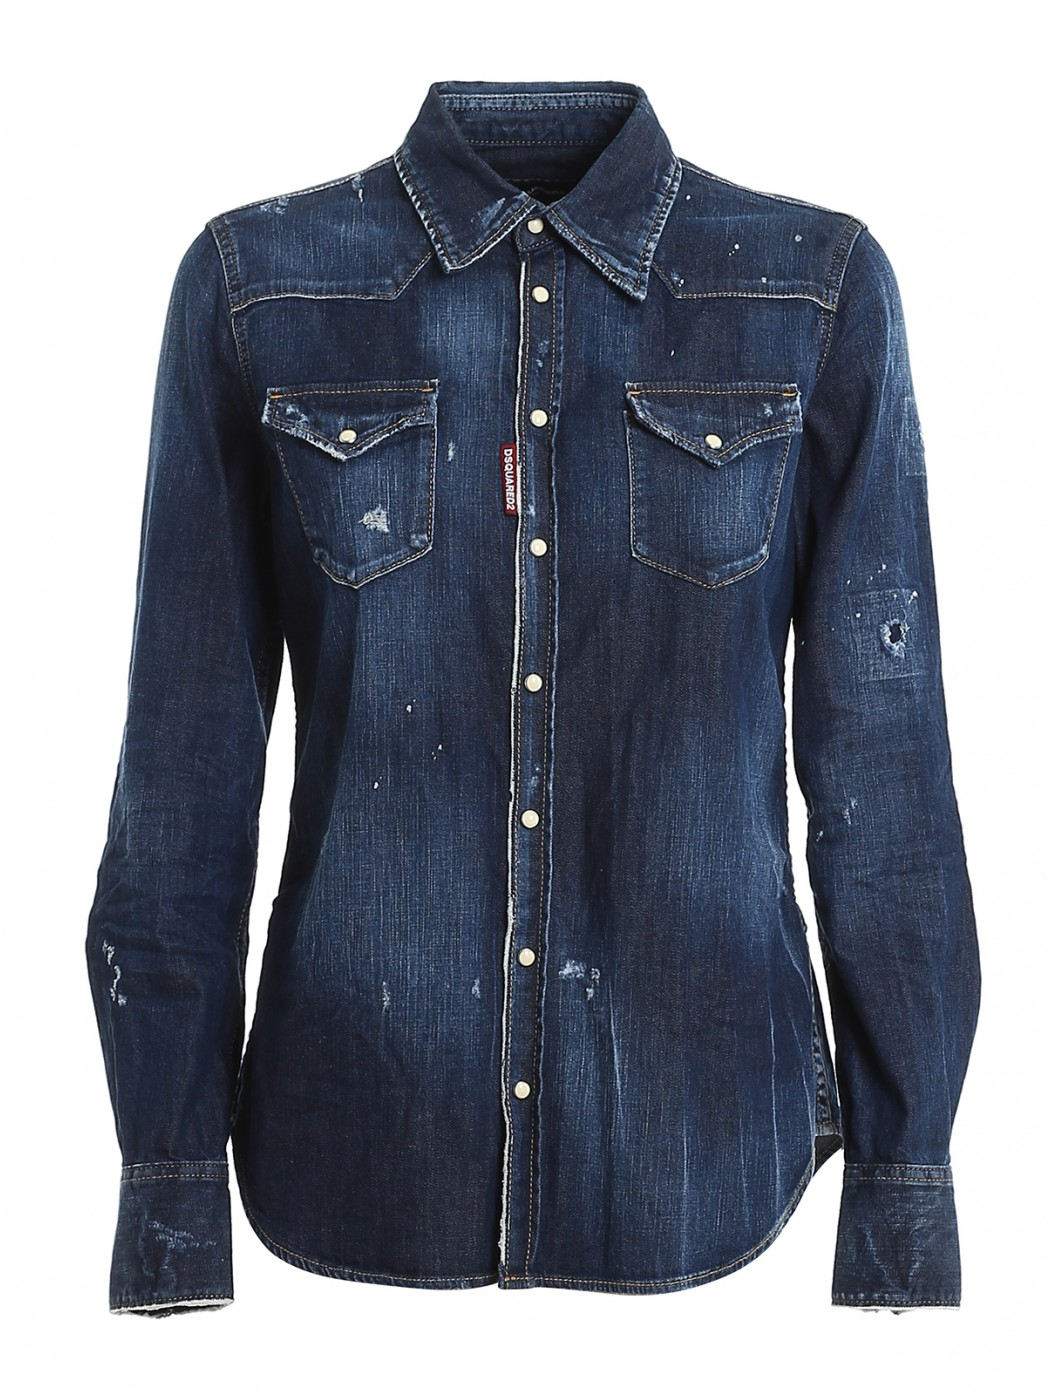 CAMICIA DENIM DSQUARED2 S75DL0742S30341 470